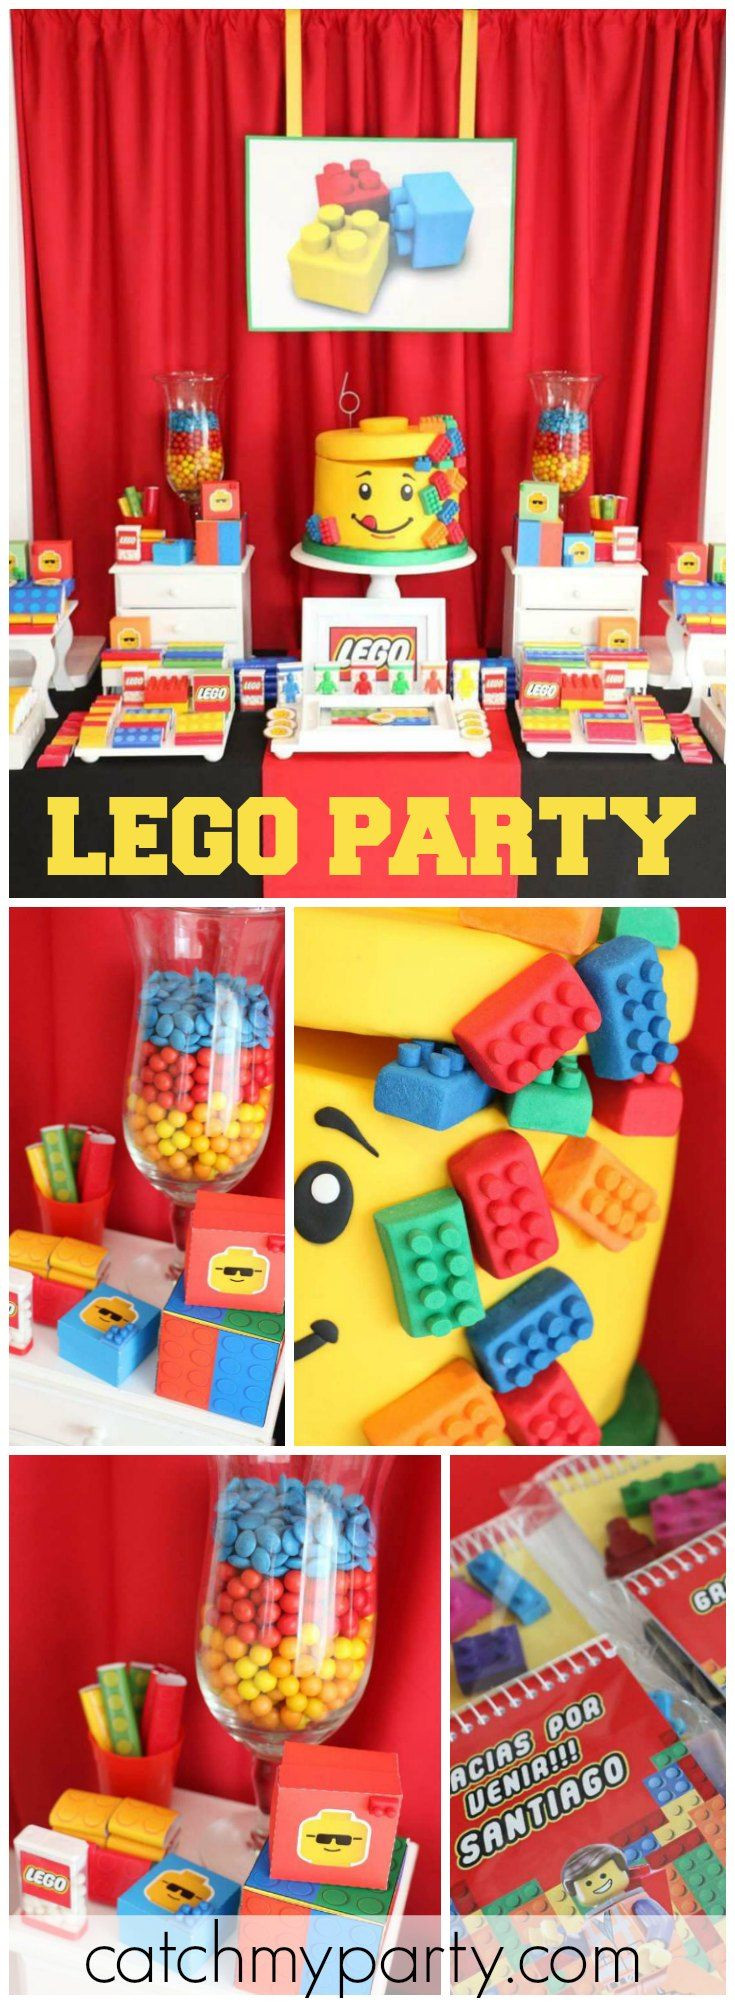 8 Year Old Boy Birthday Party Theme Ideas  362 best Lego Party Ideas images on Pinterest